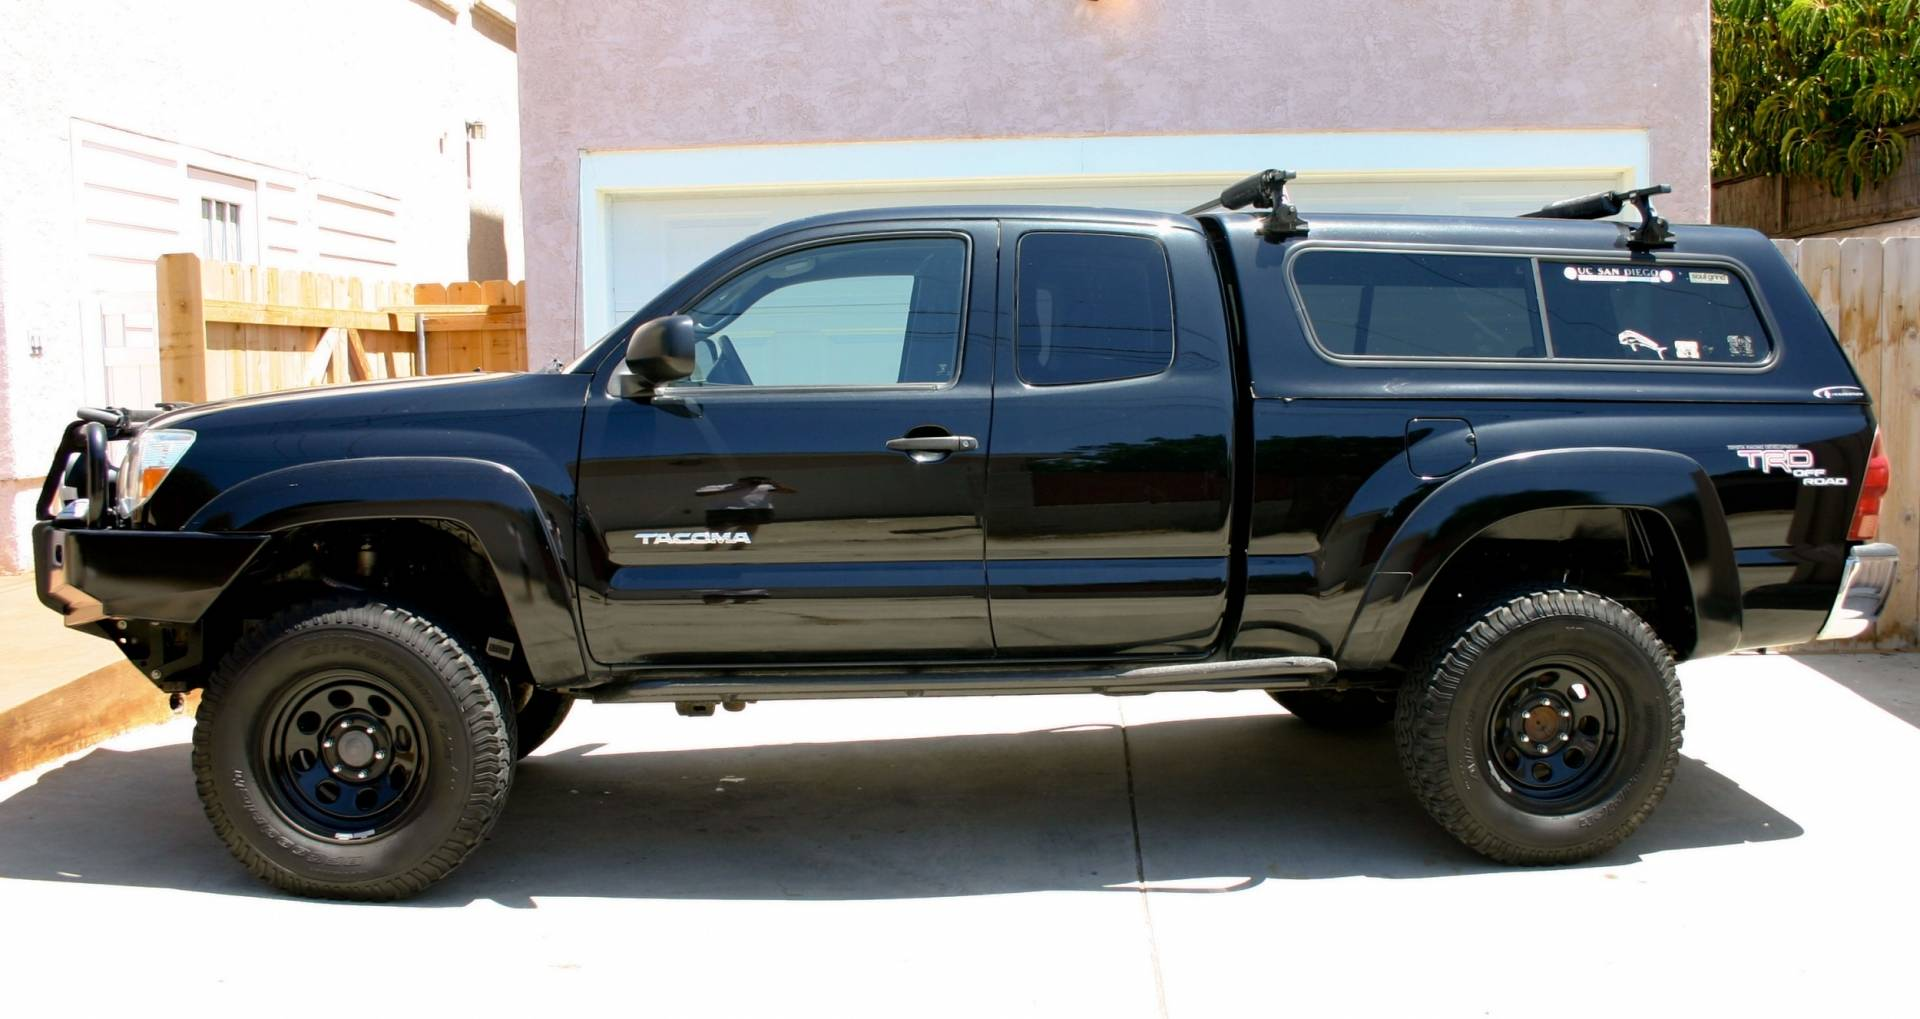 Toyota Tacoma Lifted >> 2005 Toyota Tacoma TRD Lifted $18750 | Saltwater Fishing Forums